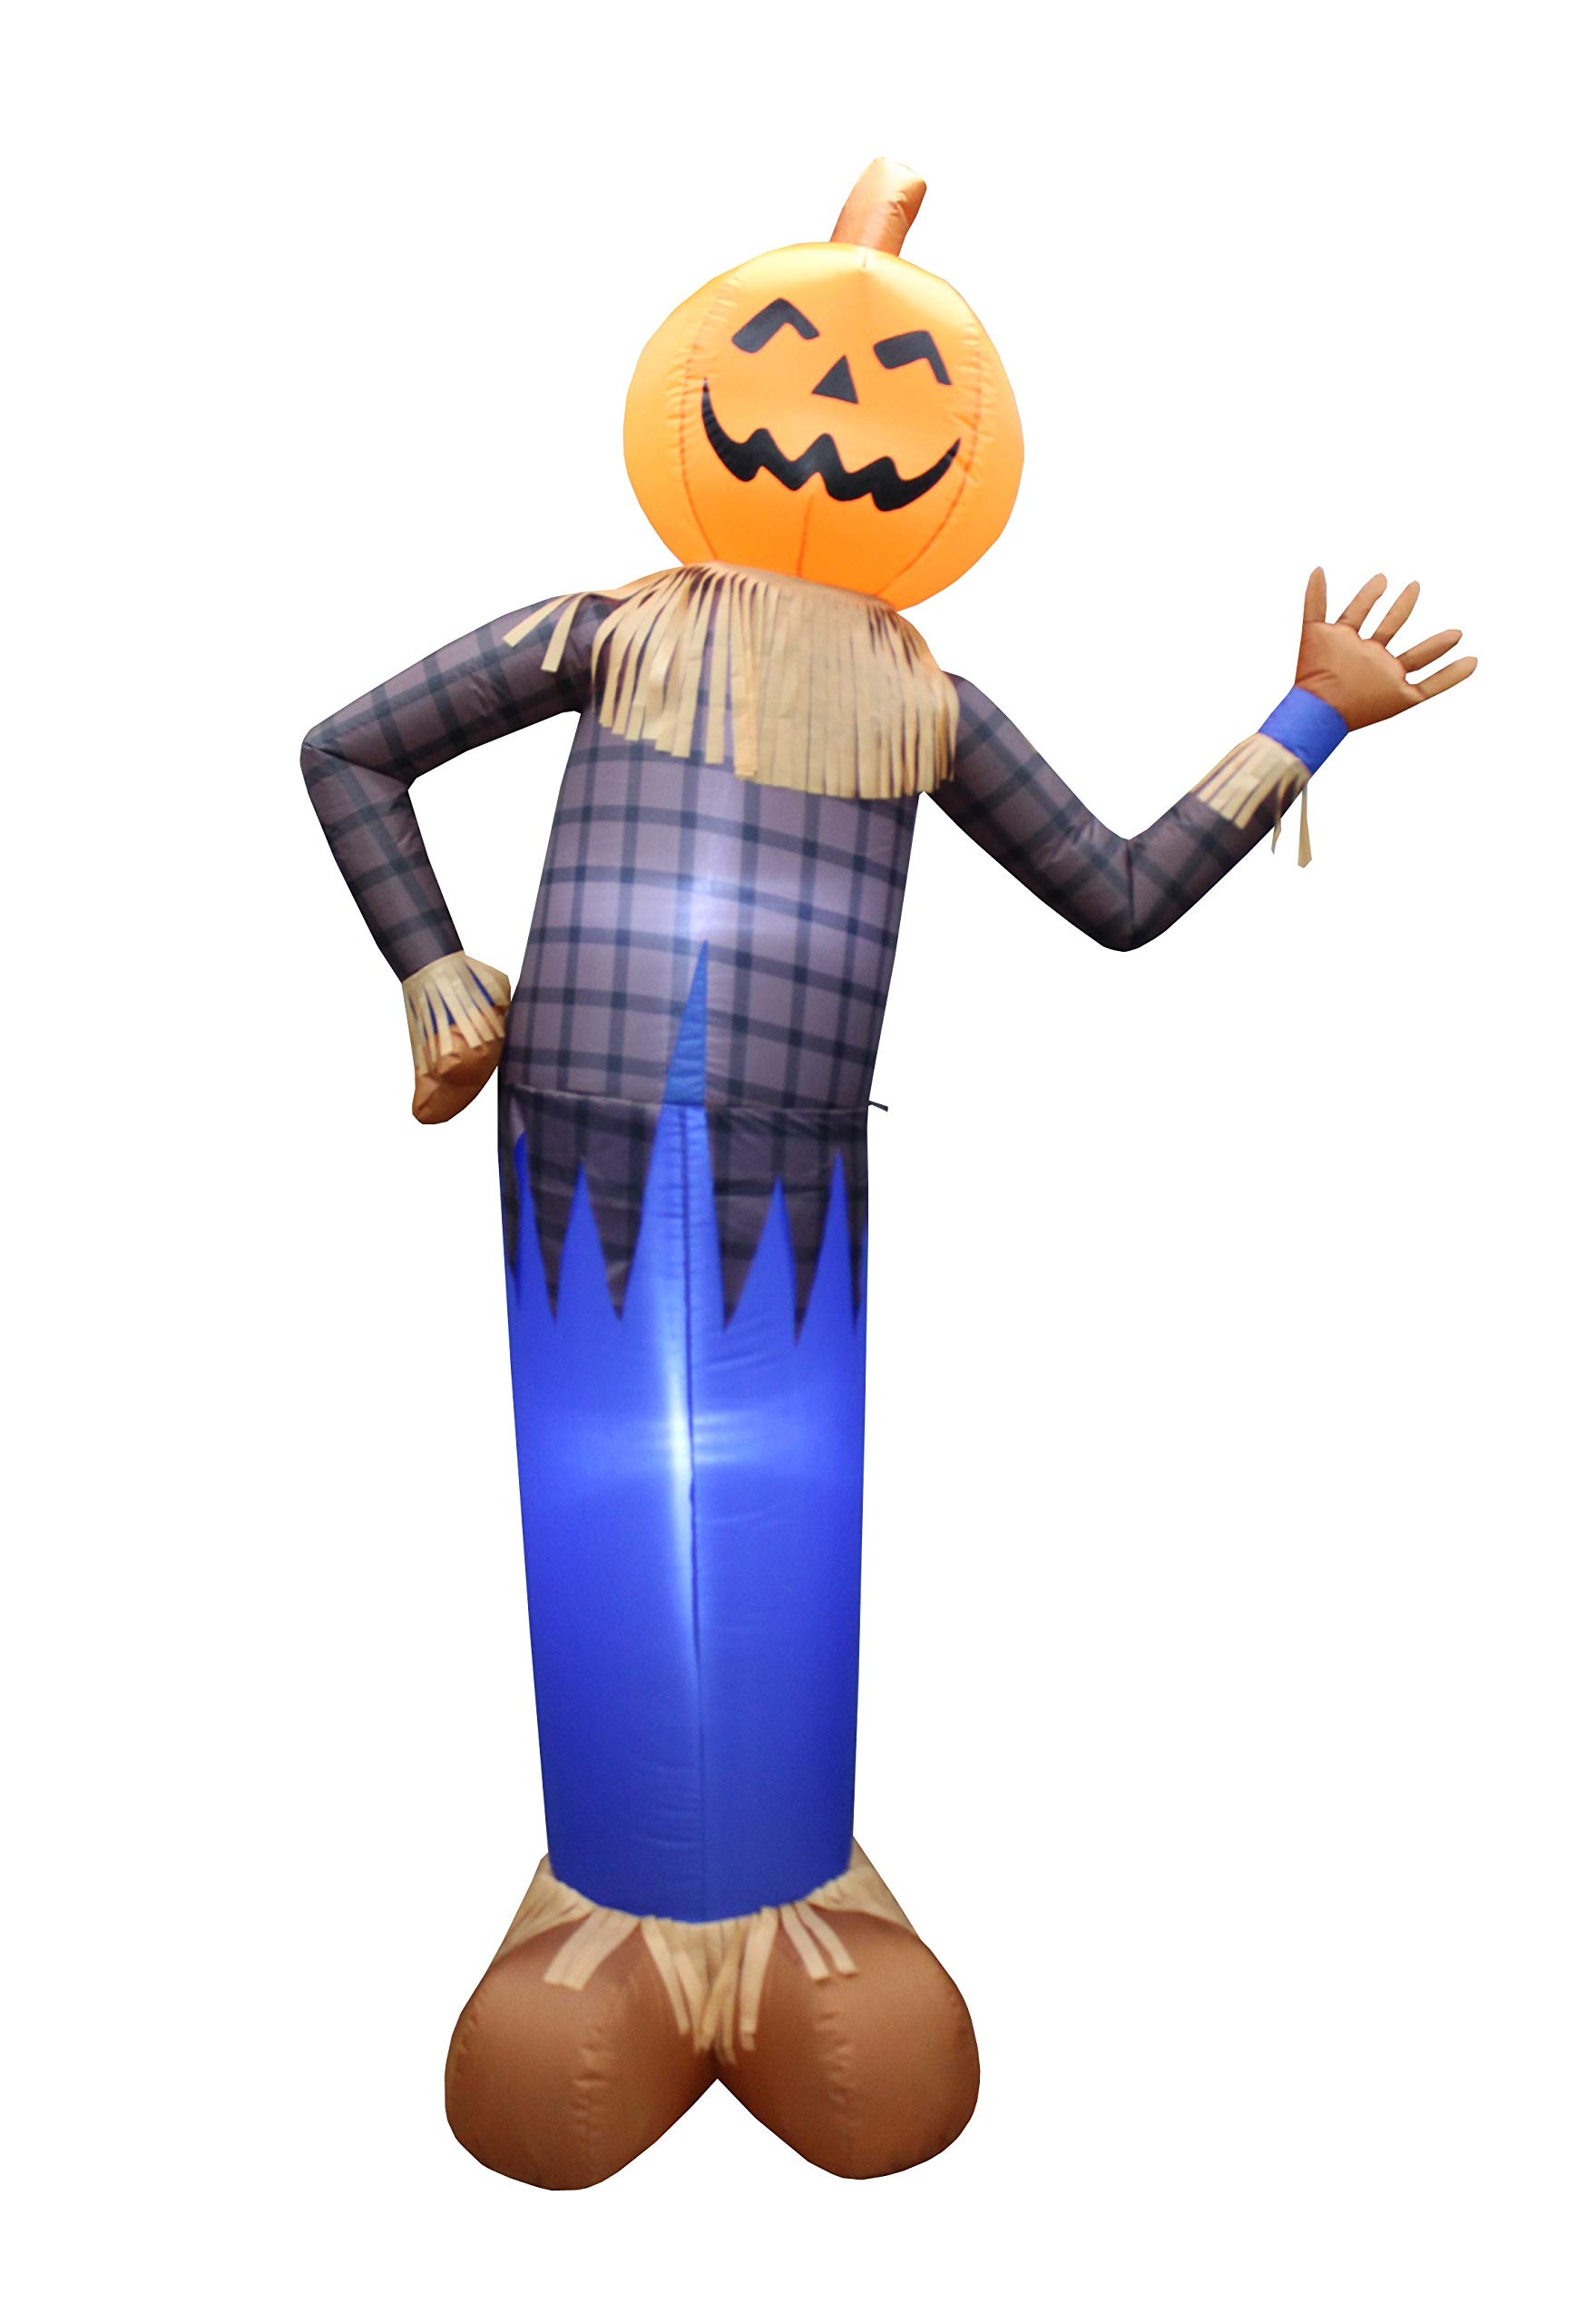 BZB Goods 6 Foot Tall Thanksgiving Halloween Inflatable Scarecrow Pumpkin Head Lights Lighted Blowup Party Decoration for Outdoor Indoor Home Garden Family LED Prop Yard Blow Up Lawn Decorations